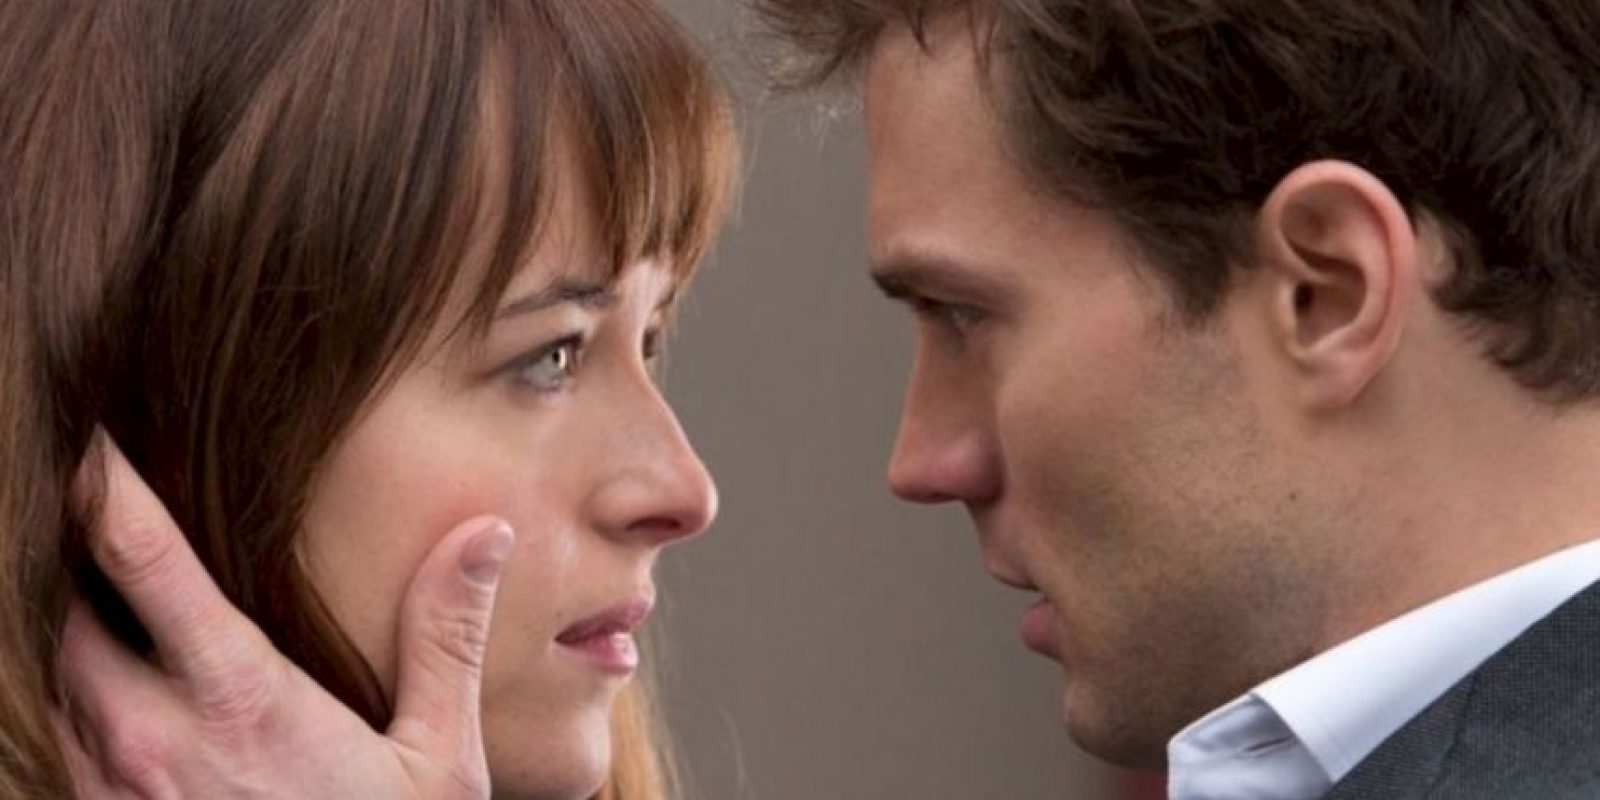 Sin embargo dieron un adelanto Foto: Vía Facebook/Fifty Shades of Grey